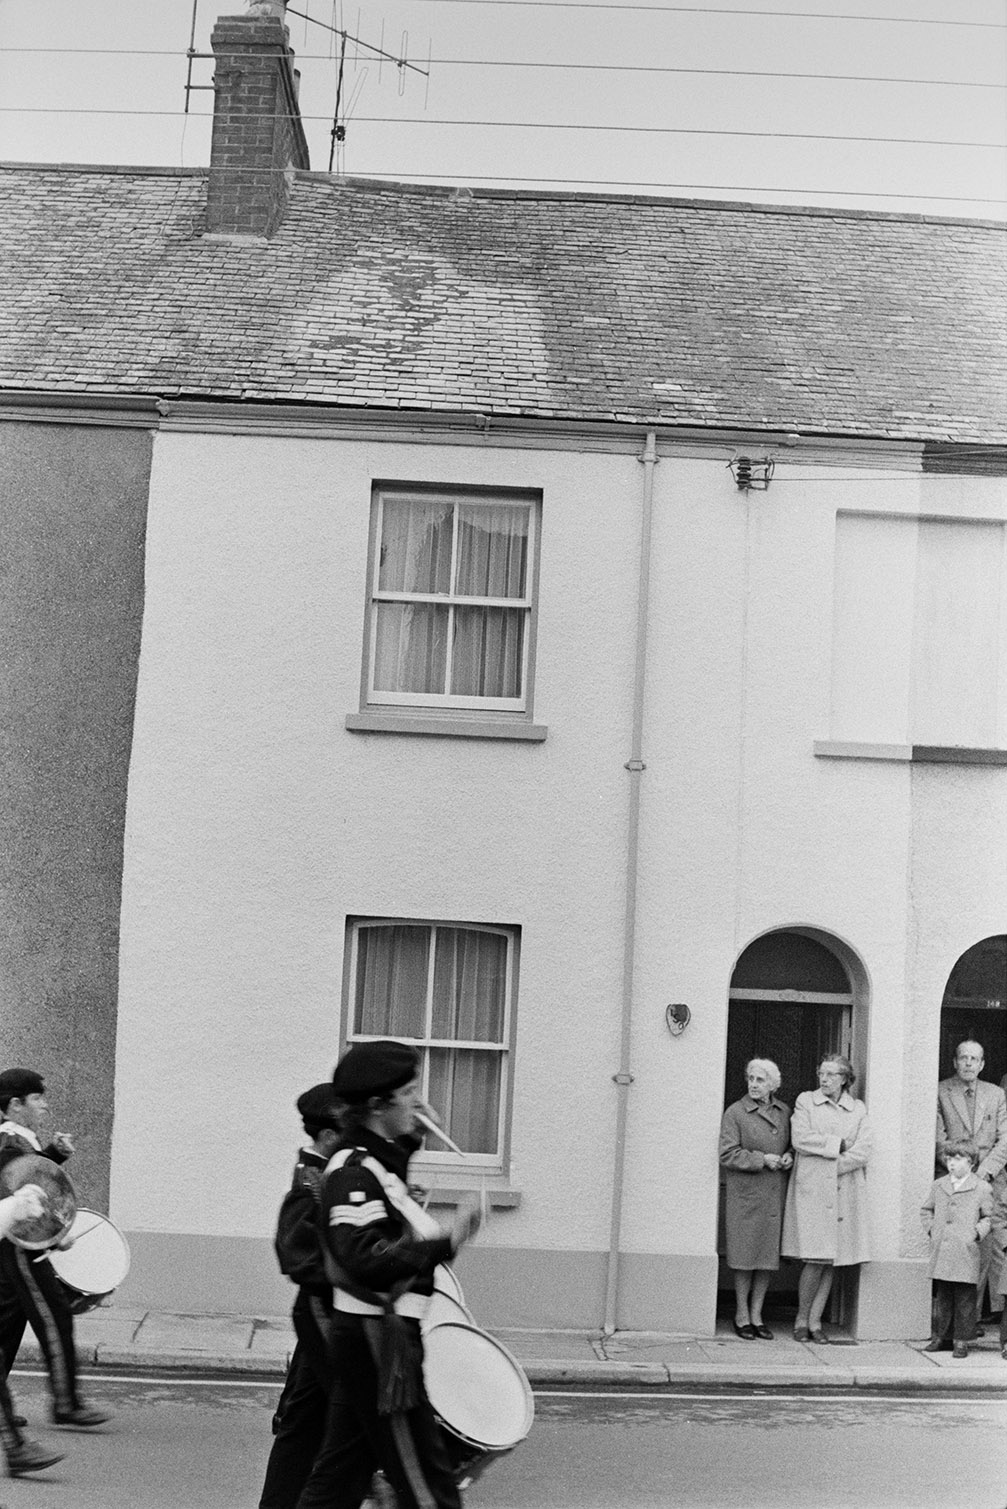 A band of drummers marching in the Torrington May Fair parade. Women, a man and a child are watching from the doorways of their houses in Torrington.